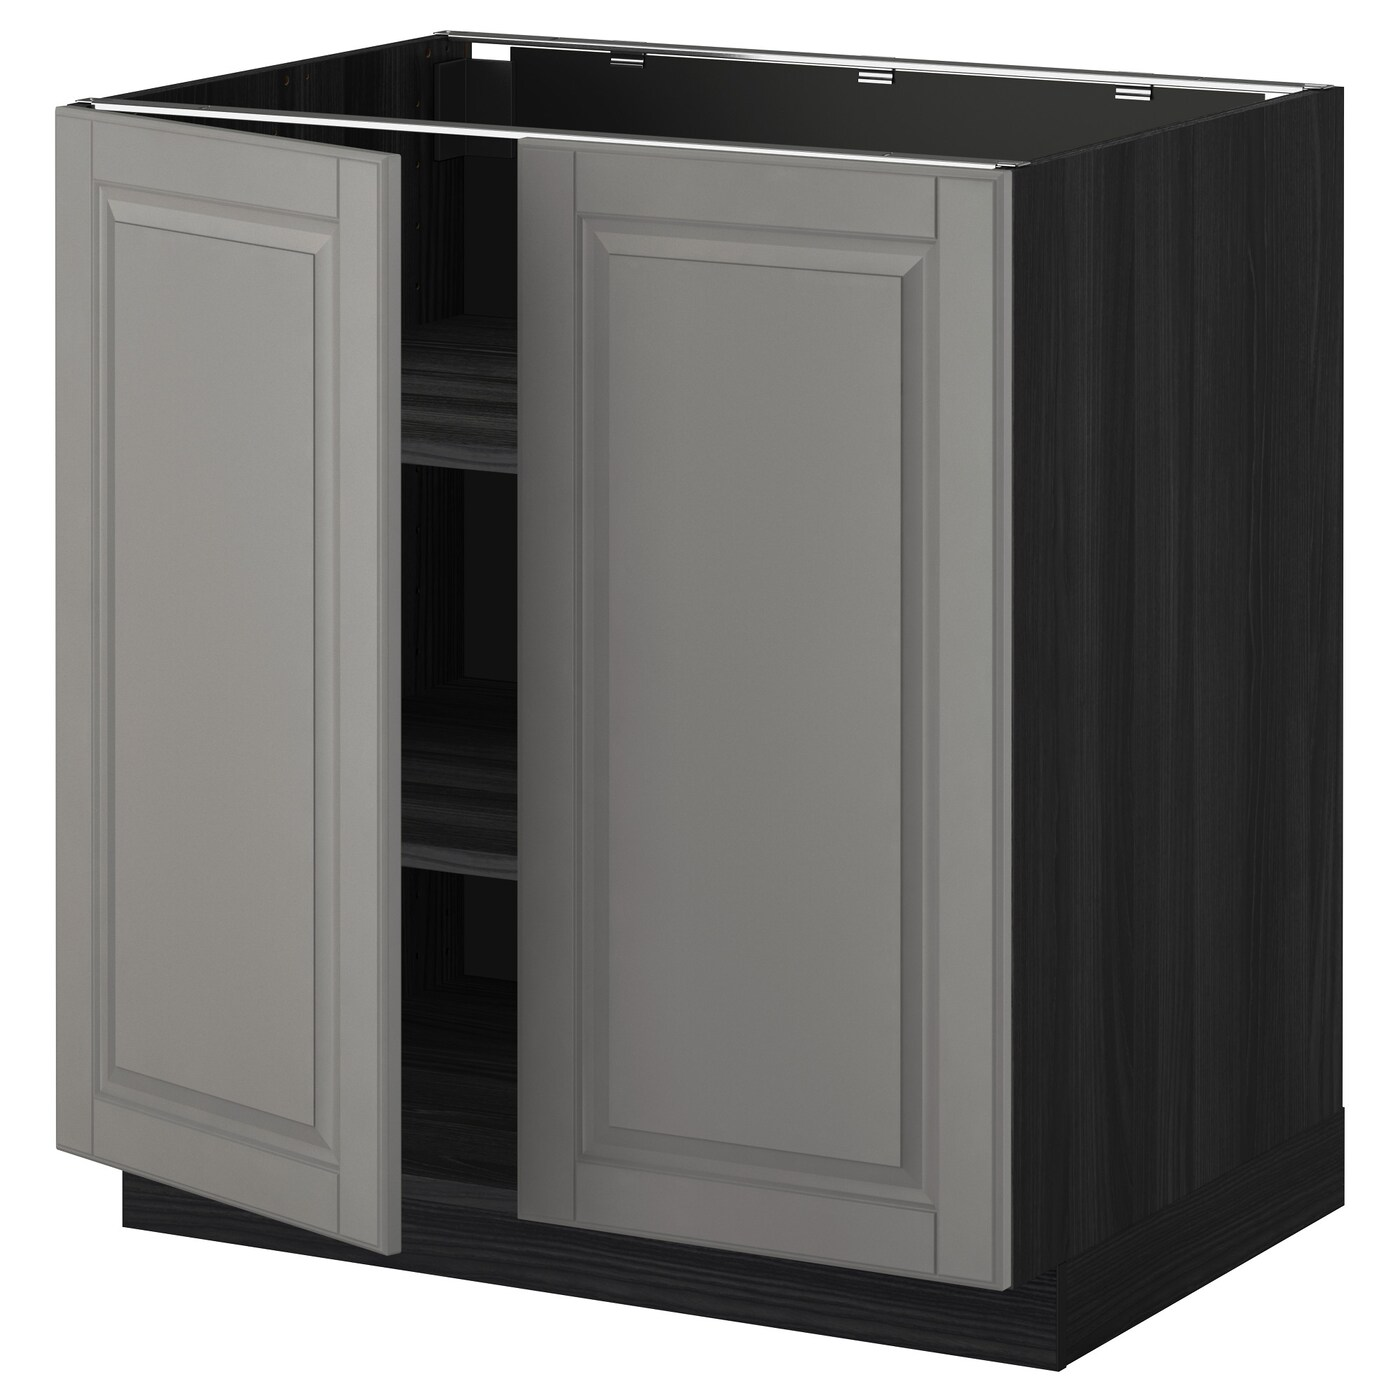 METOD Base Cabinet With Shelves/2 Doors Black/bodbyn Grey 80x60 Cm